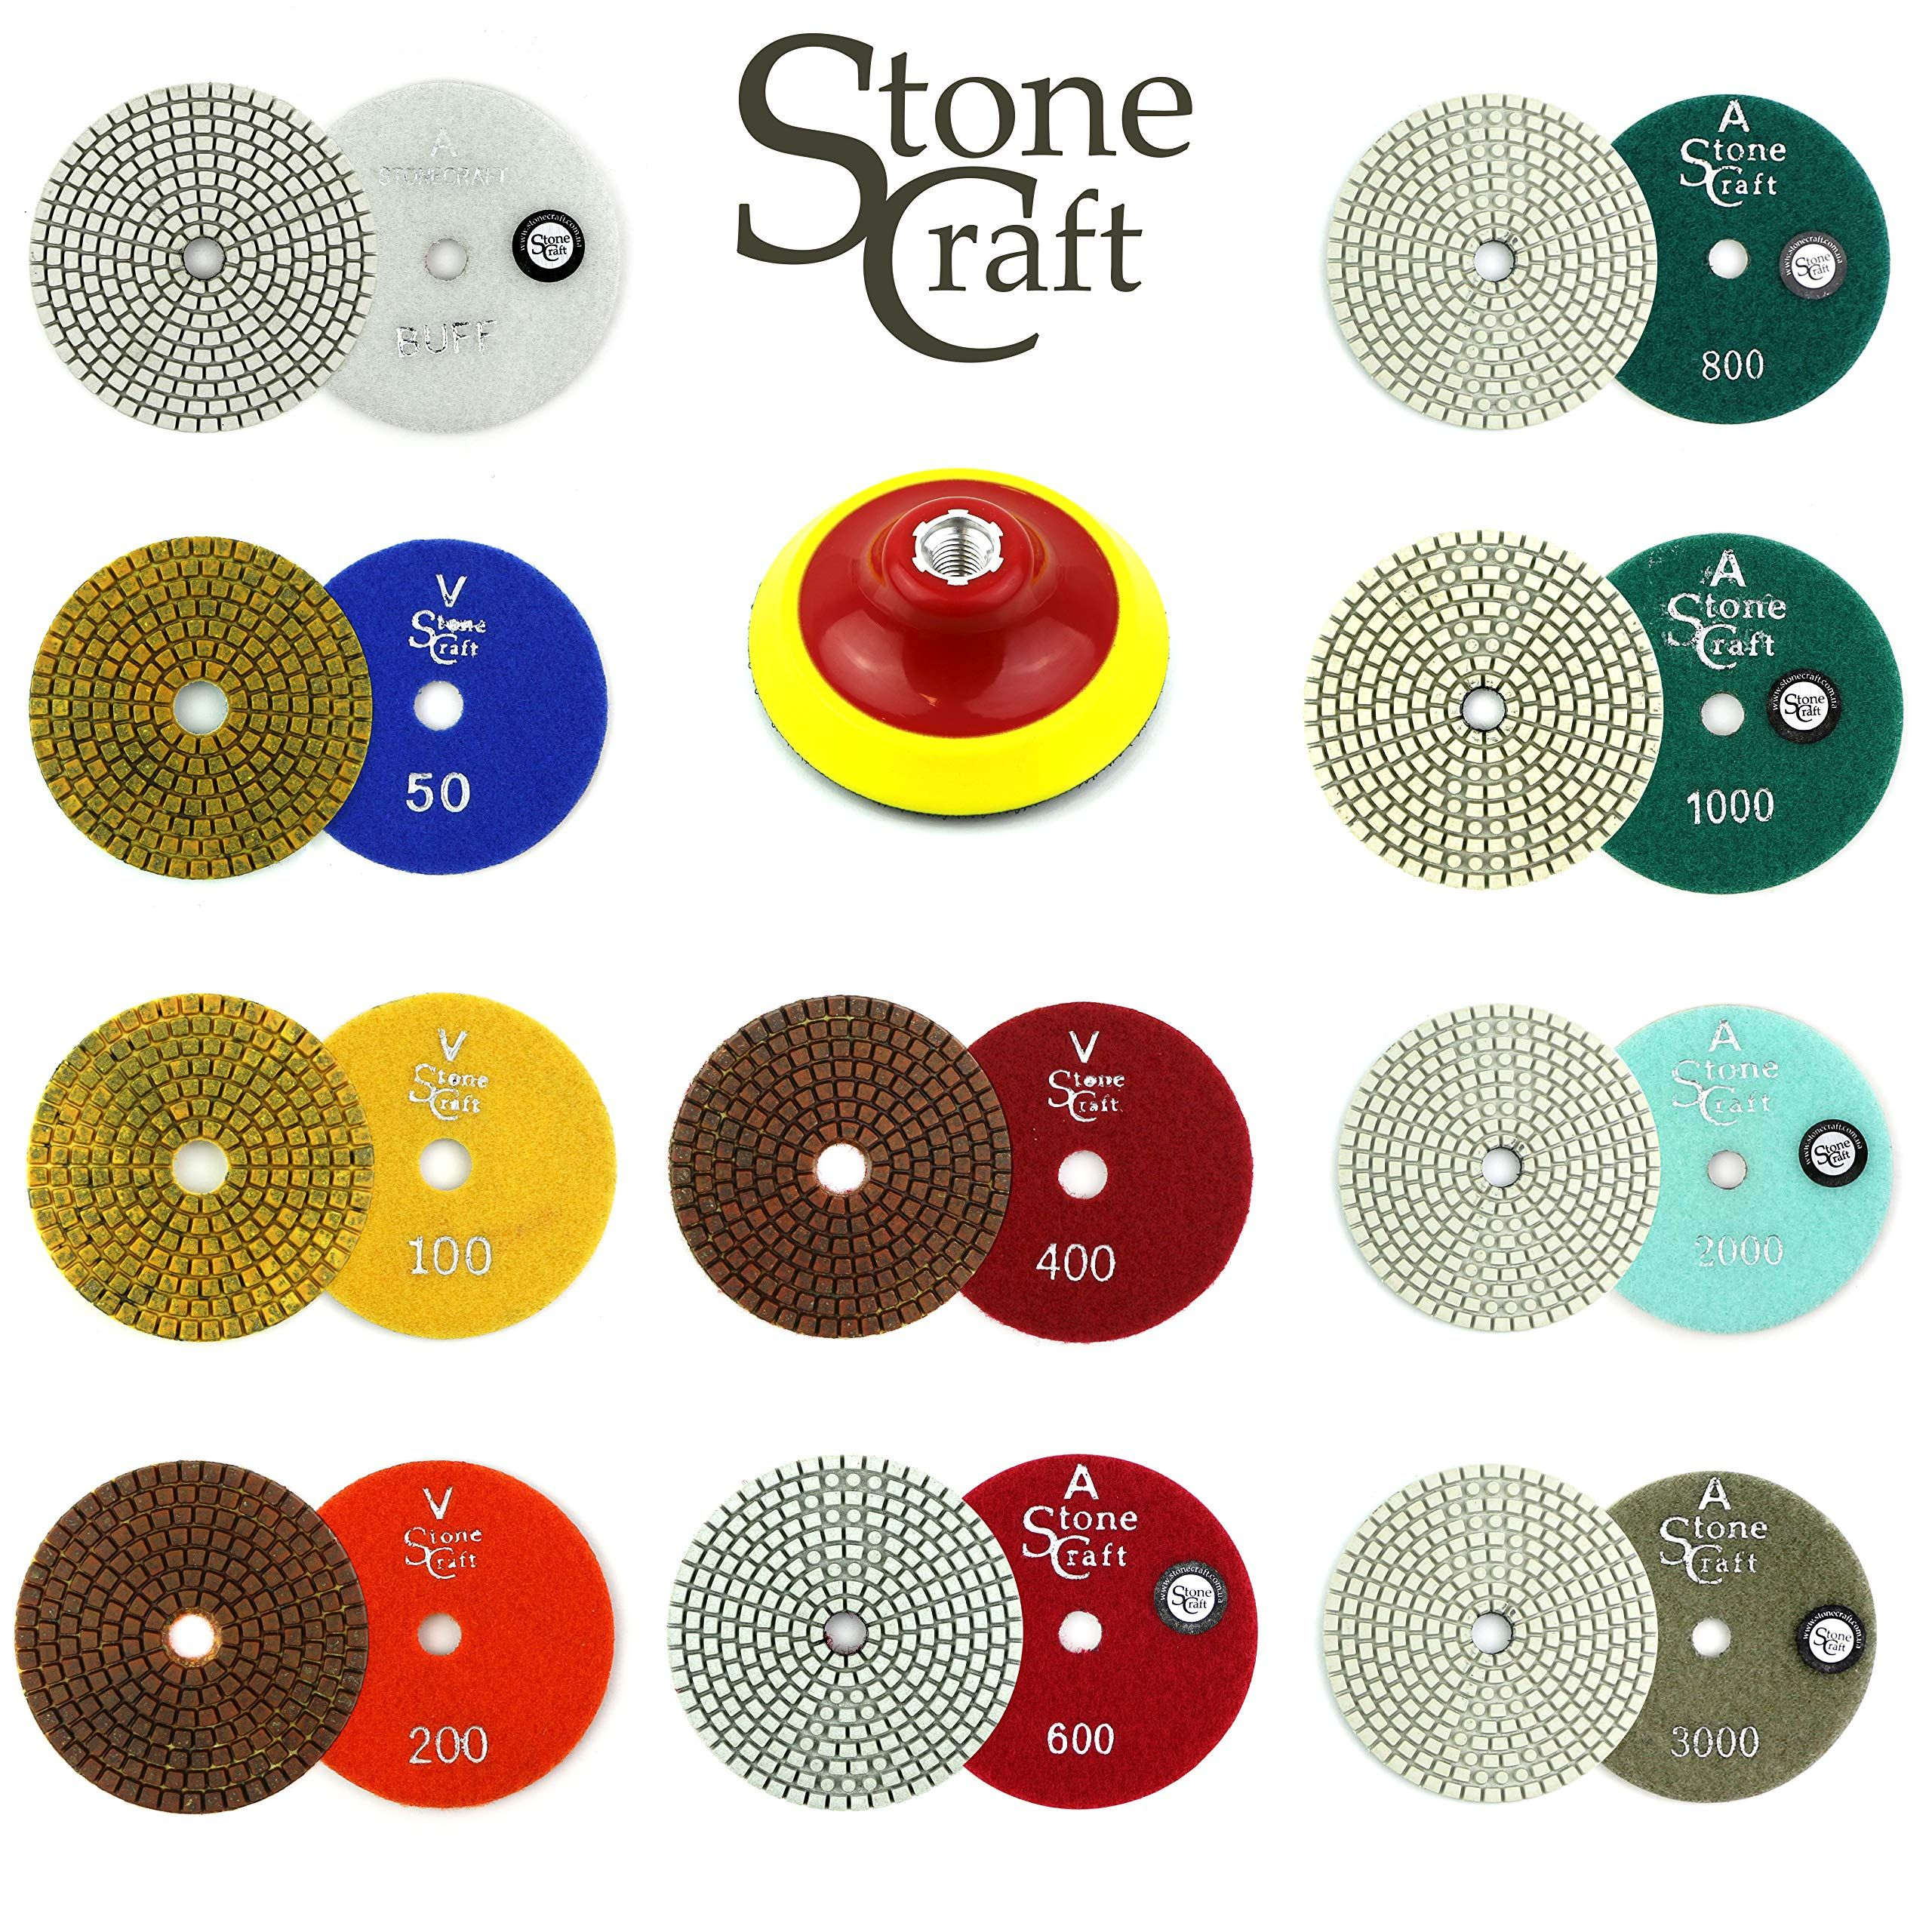 Stonecraft Diamond Polishing Pads 4 Inch Wet Dry 11 Piece Set With White Buff Foam Backing Pad For Granite Marble Concrete Marble Granite Concrete Granite